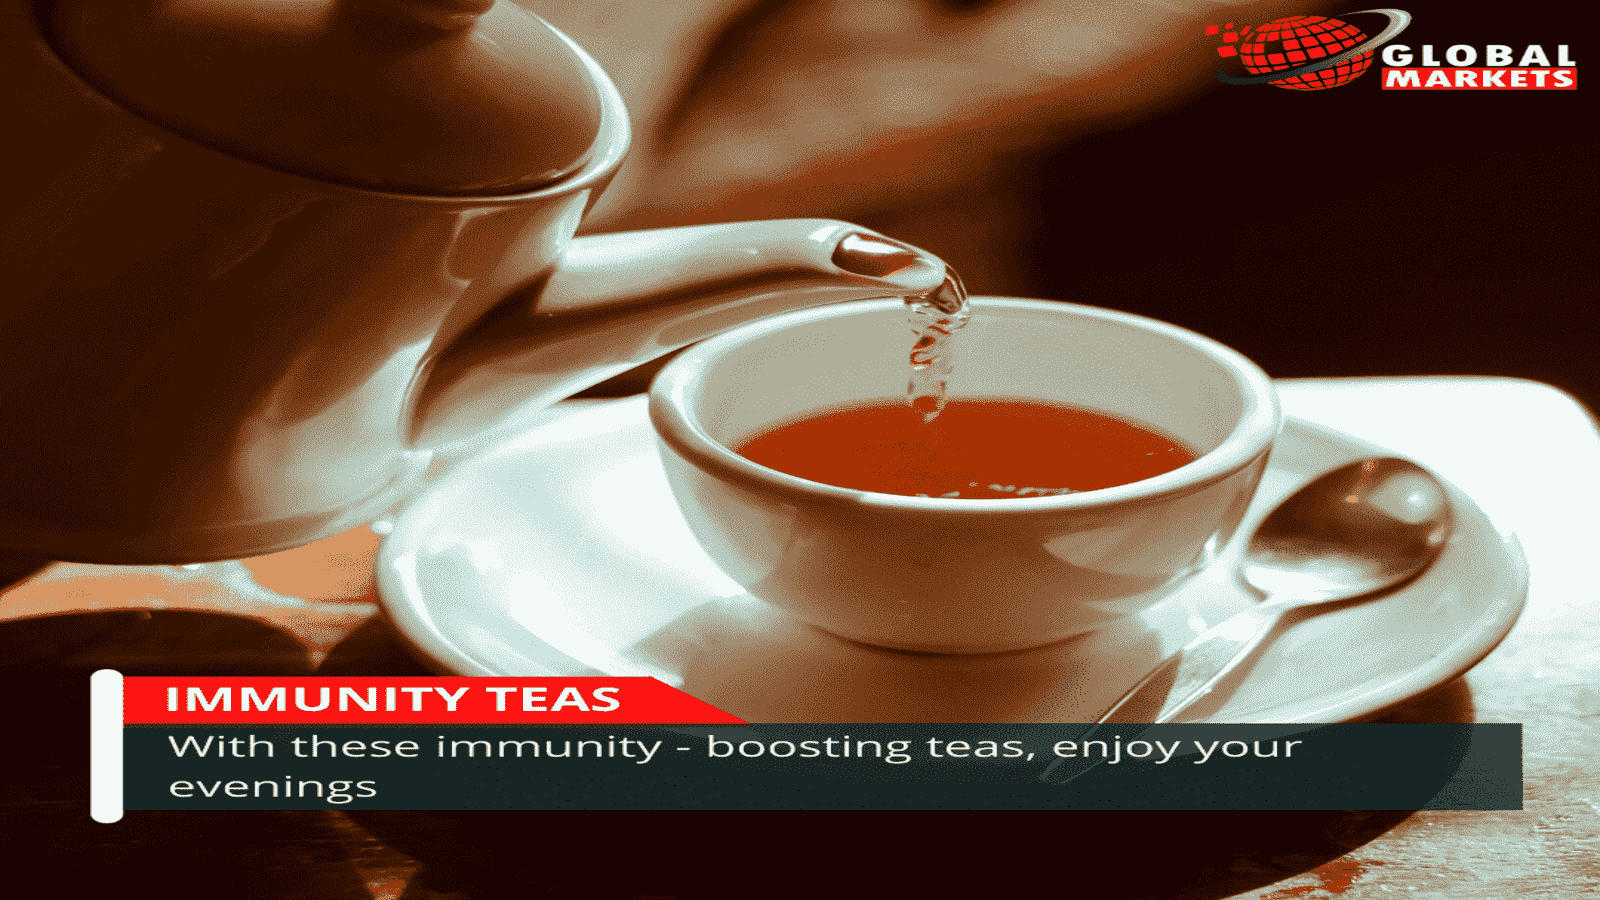 With these immunity-boosting teas, enjoy your evenings